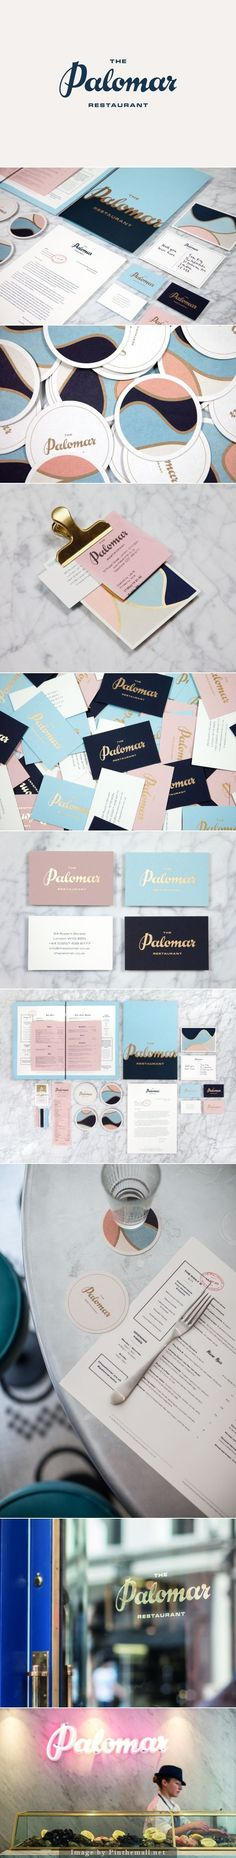 Corporate Design für Restaurant The Palomar / Goldprägung Text and colour palette #restaurantdesign